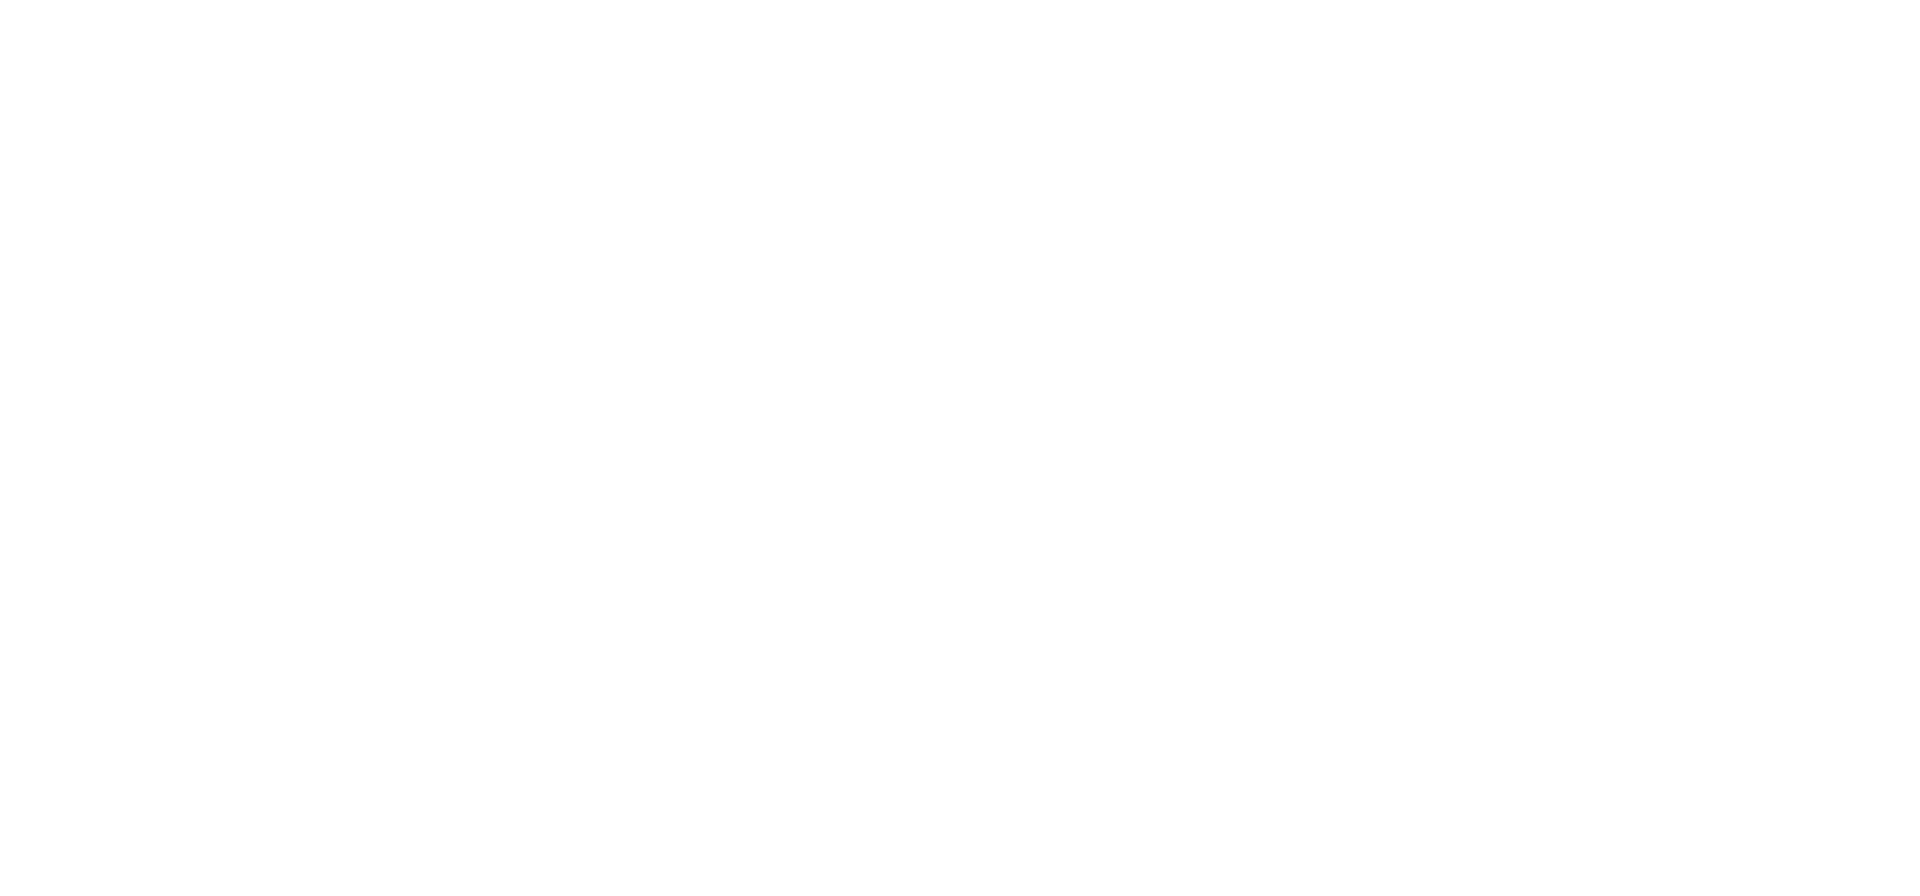 Smart Scheduling Analyzer